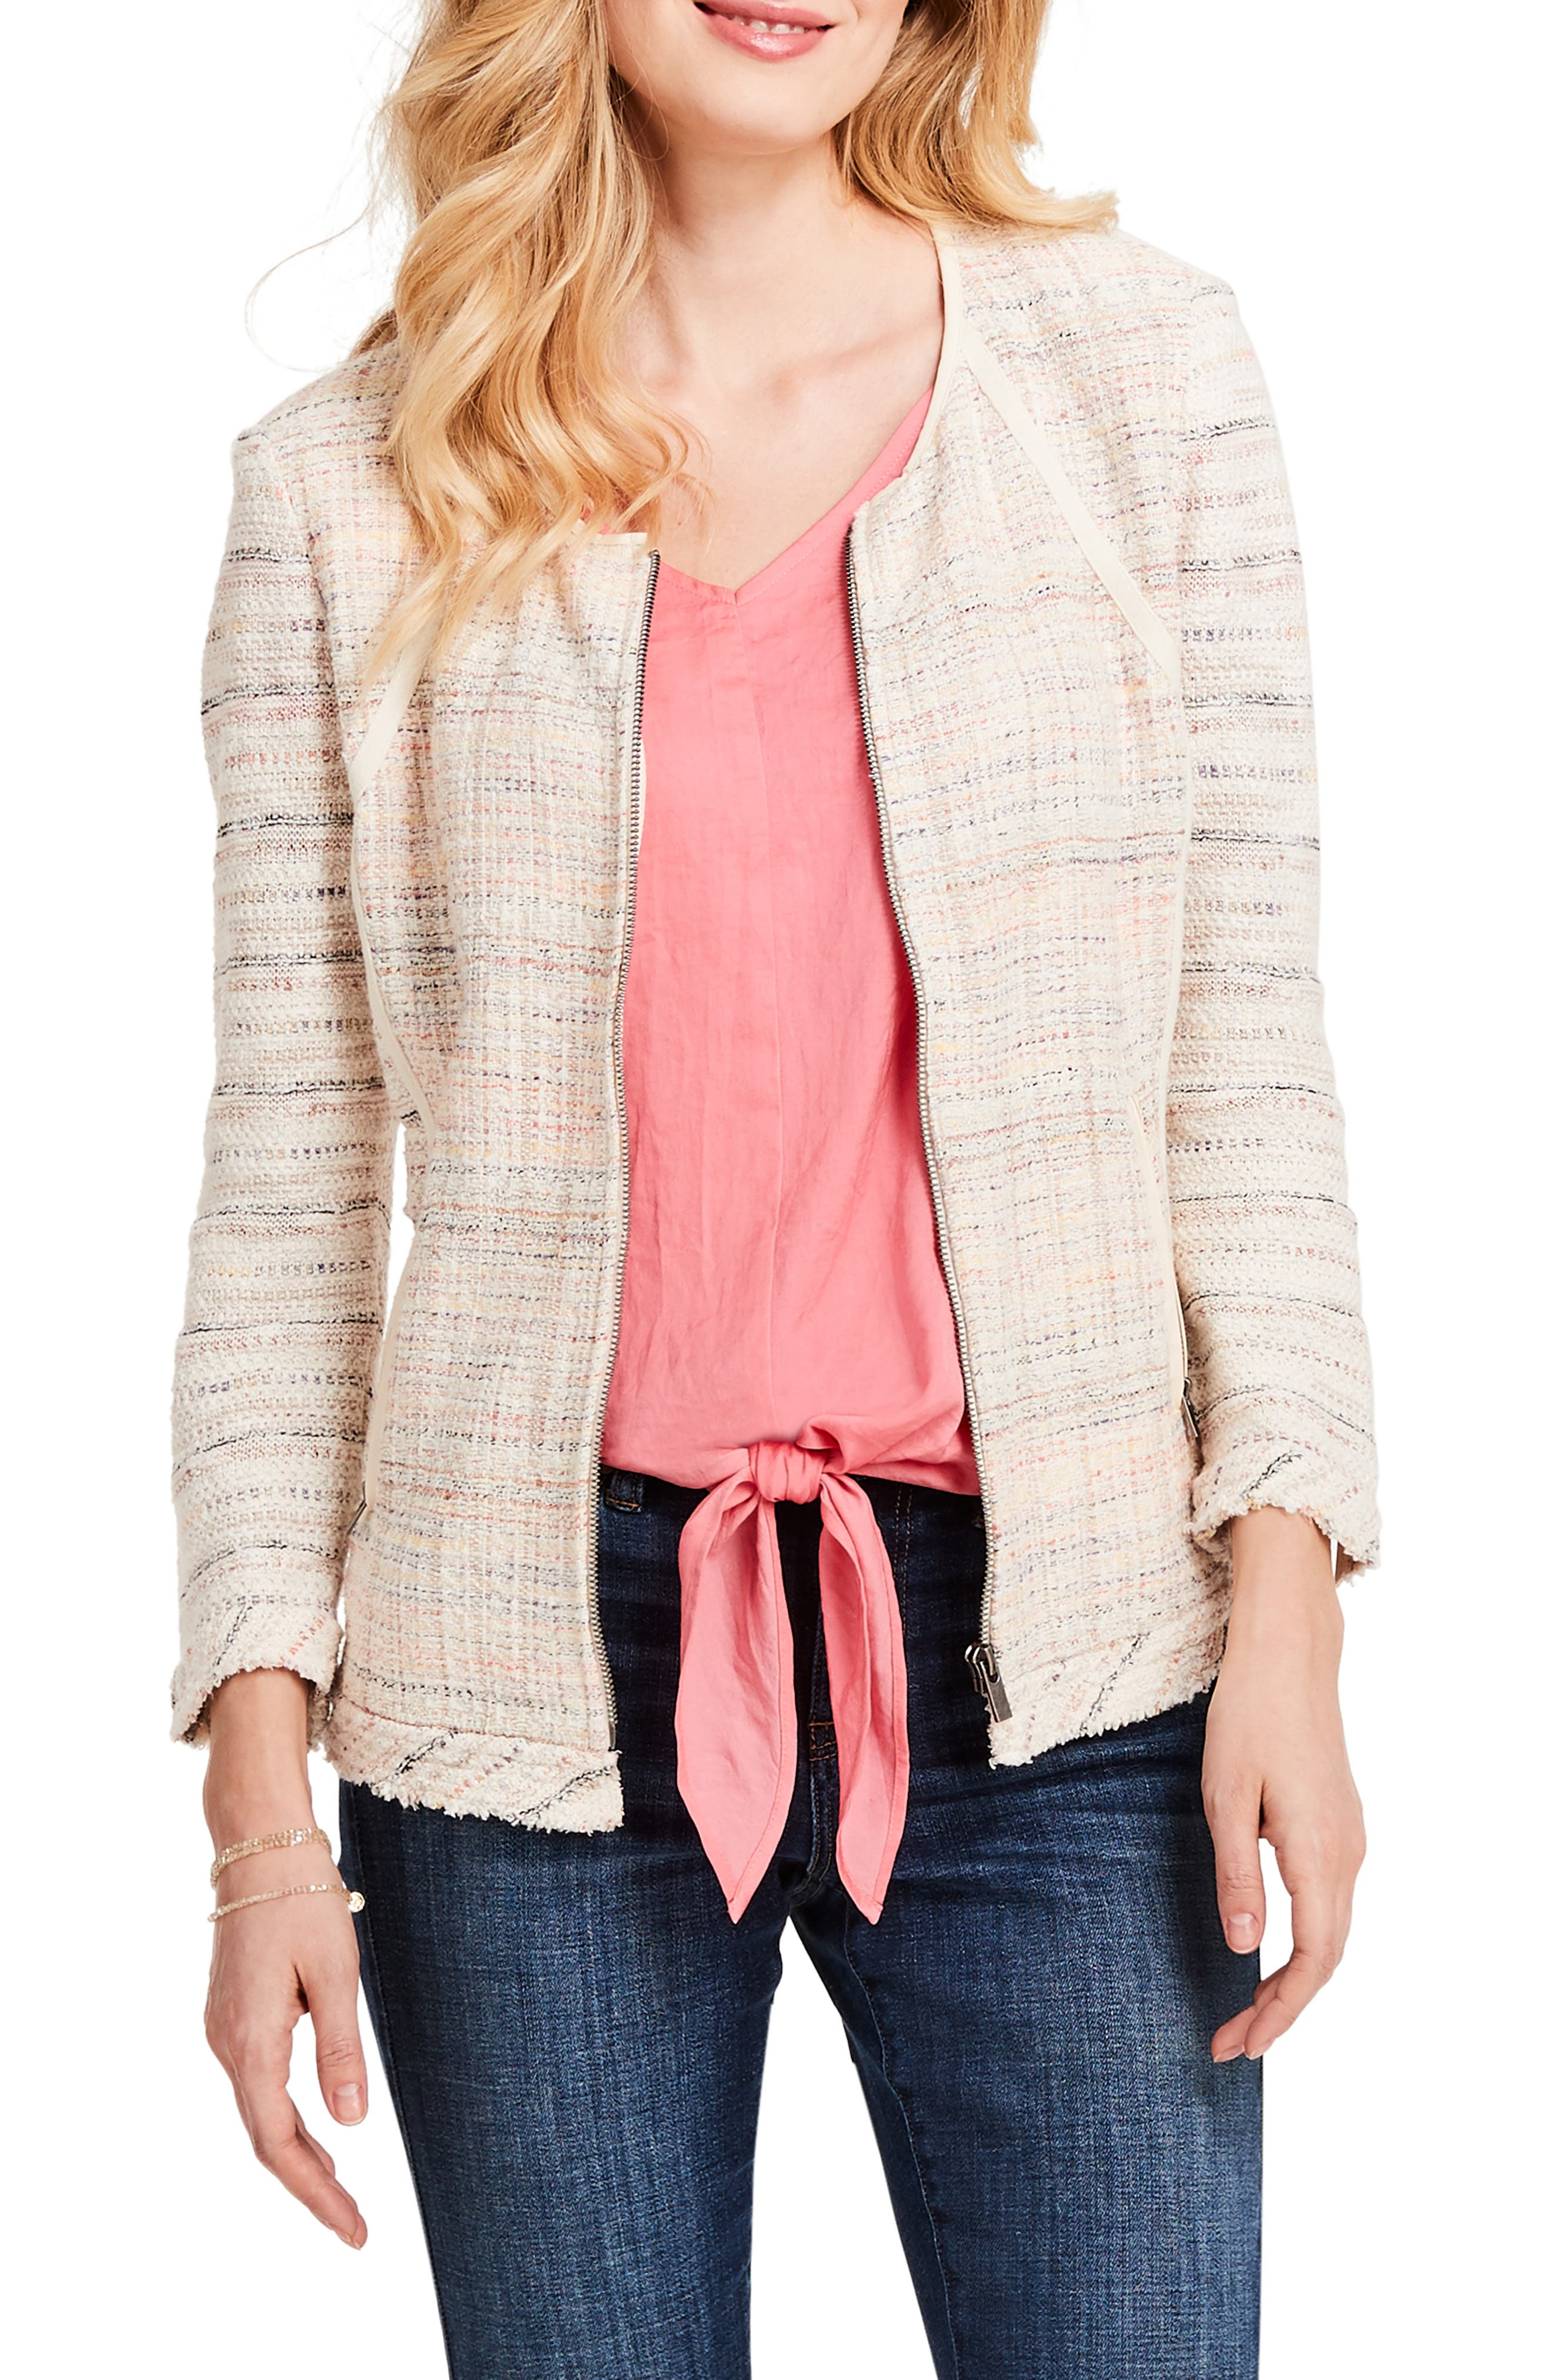 Lady Lace Mesh Cardigan Top See Through Long Jacket Summer Outerwear Casual Coat